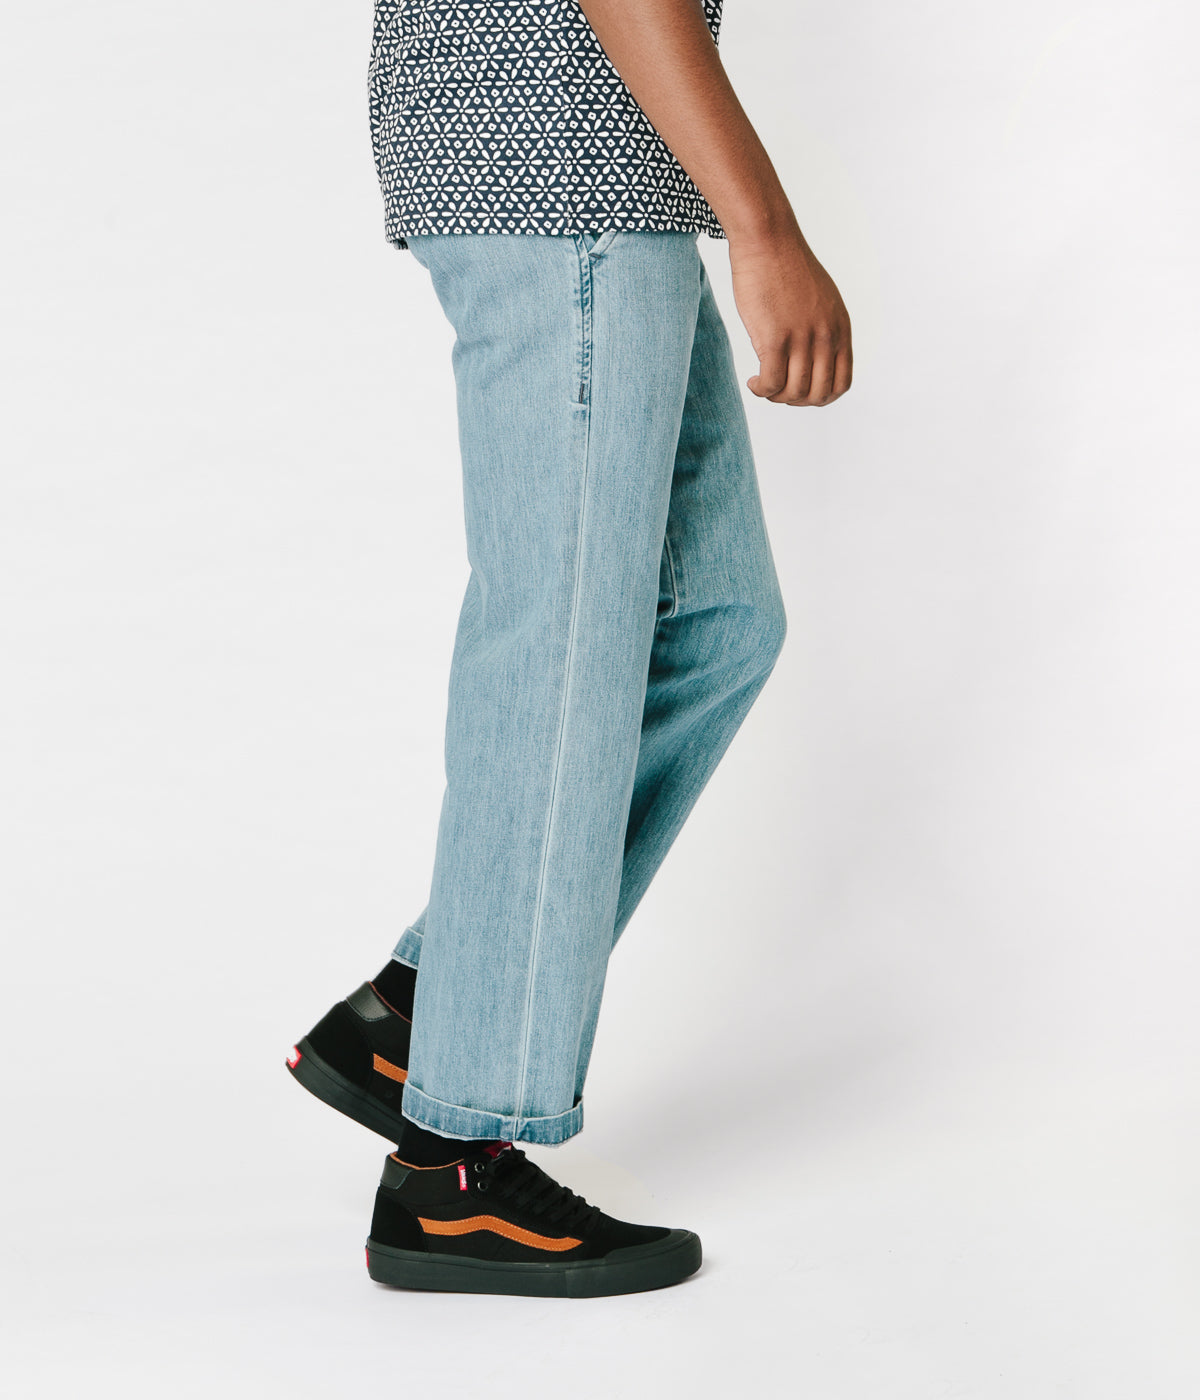 Dickies 873 Denim Work Trousers - Bleach Wash